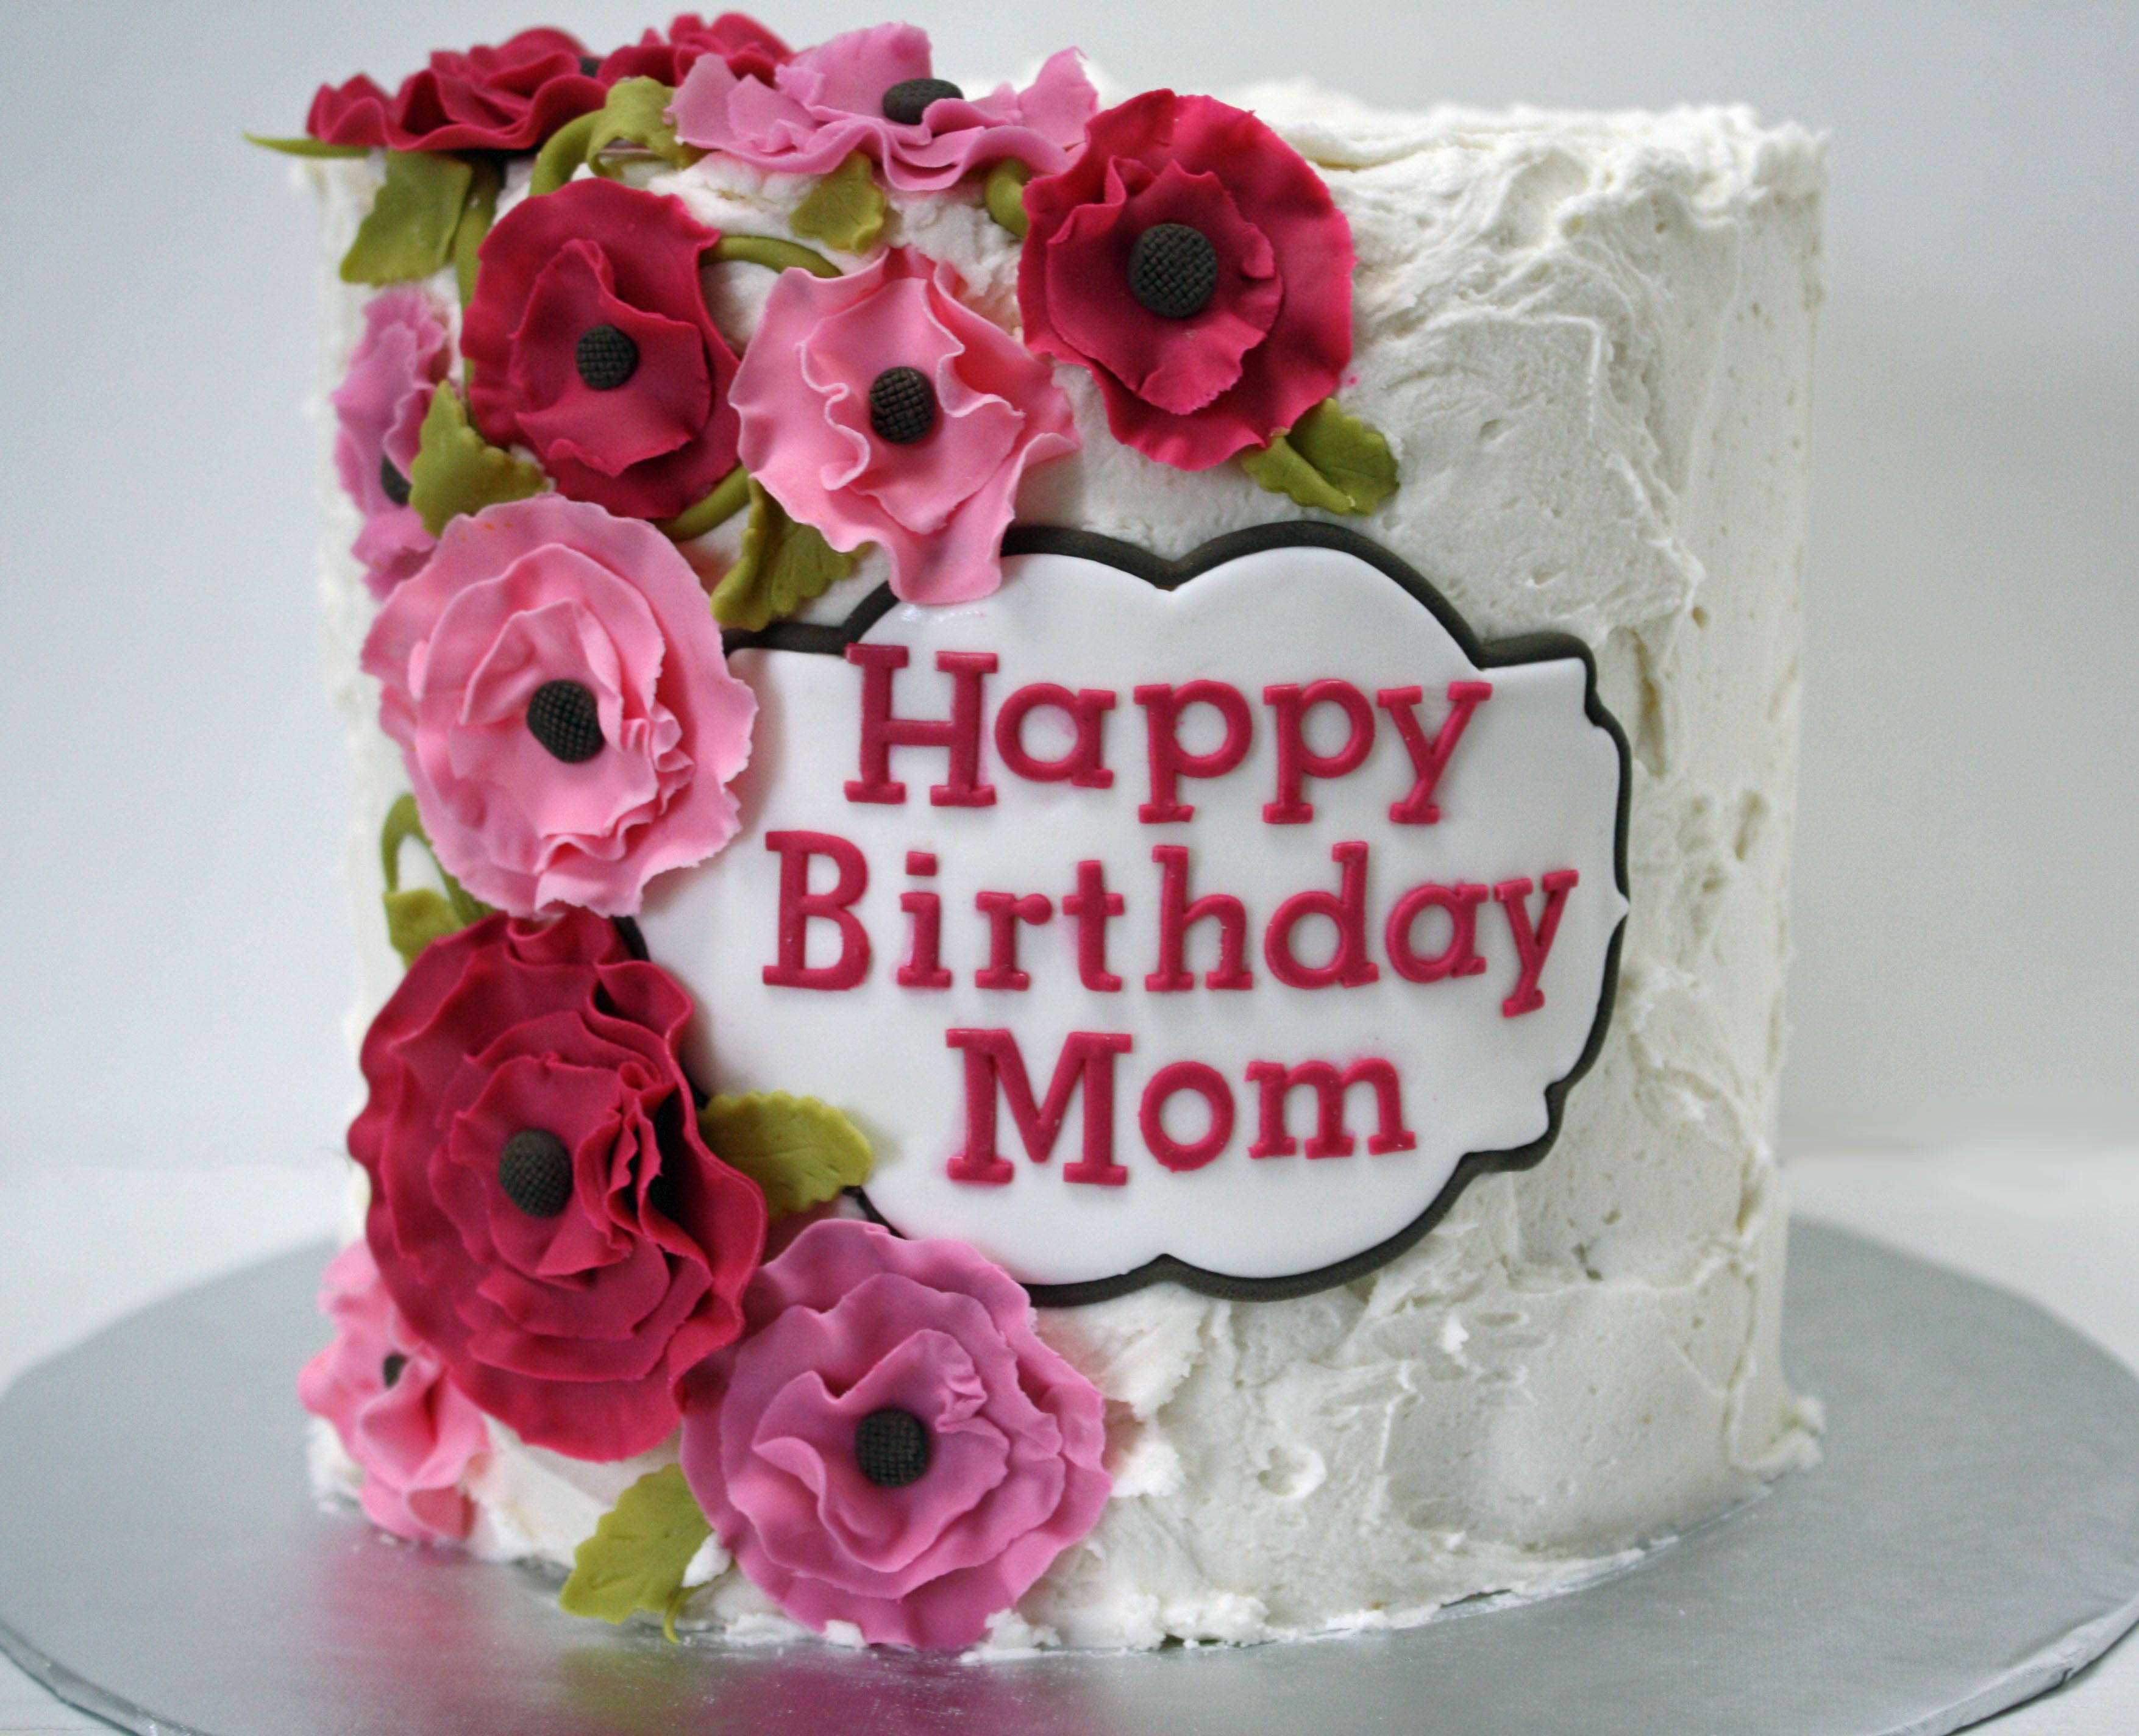 Happy Birthday Cake And Flowers Images Happy Birthday Mom Cake With Pink Flowers Frosted Bake Shop